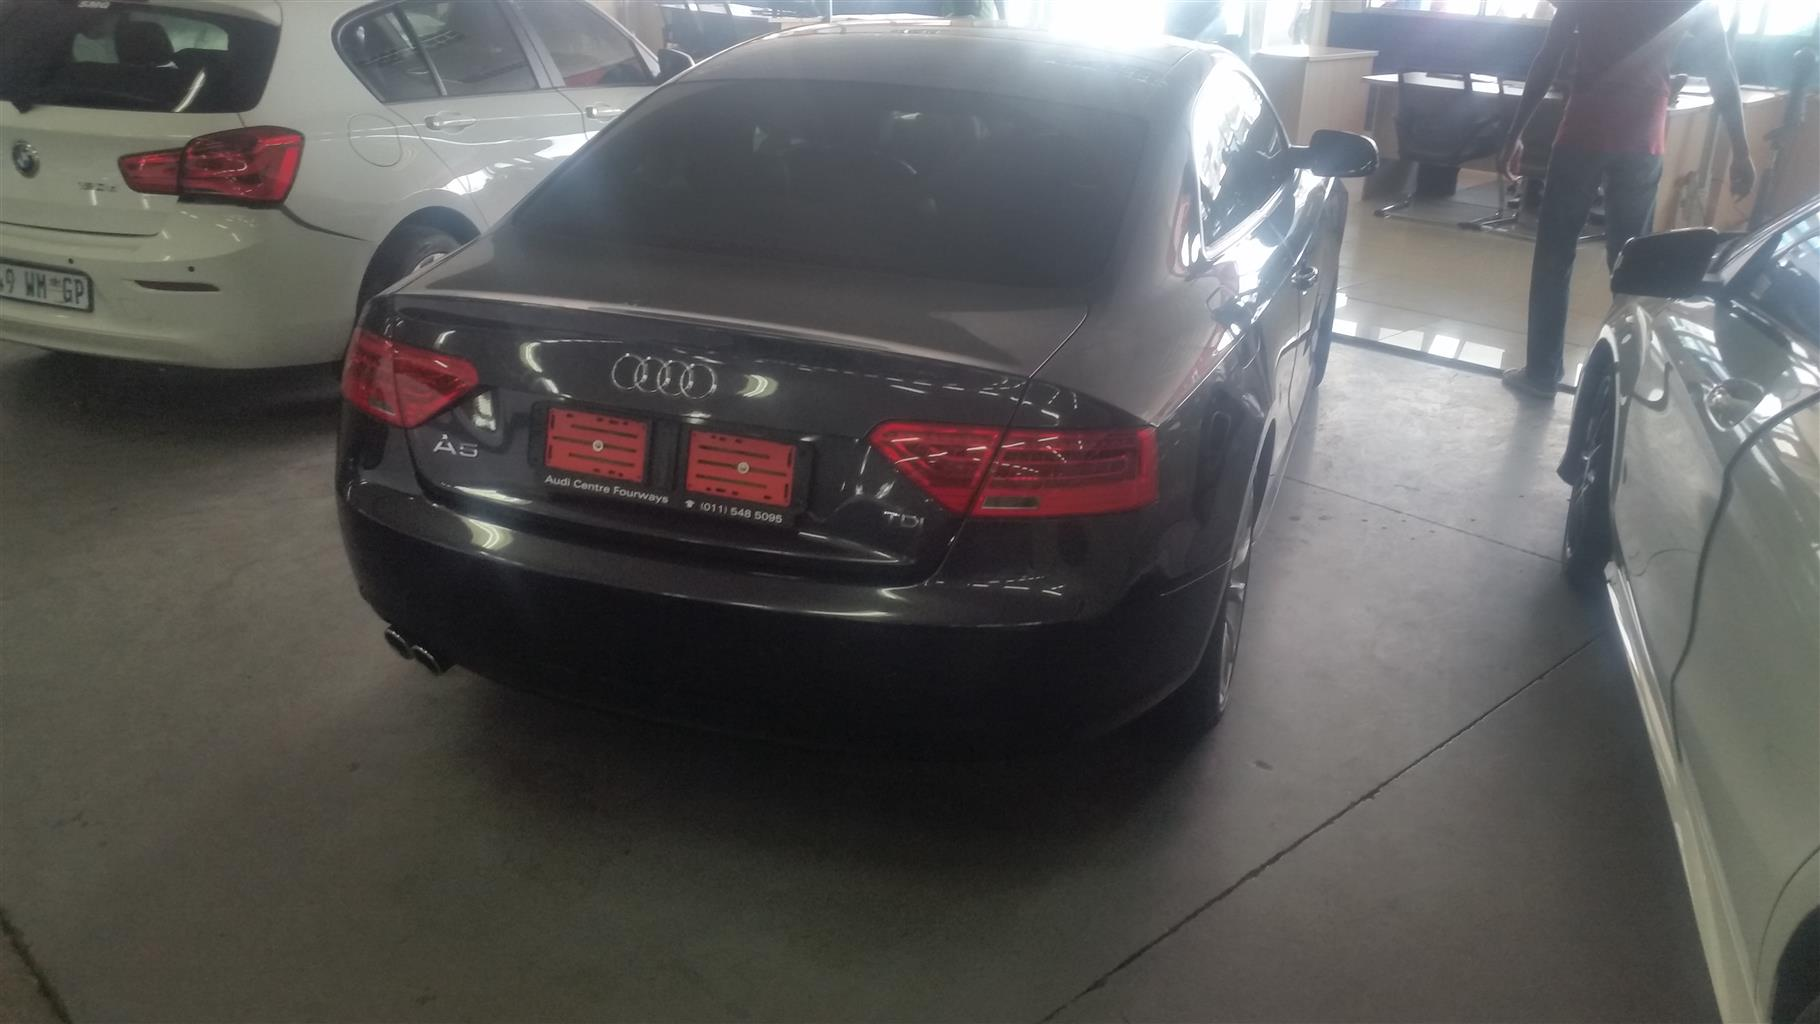 Audi A5, 2014 20TDI Multitronic With 79197 KM ( REF C24557)